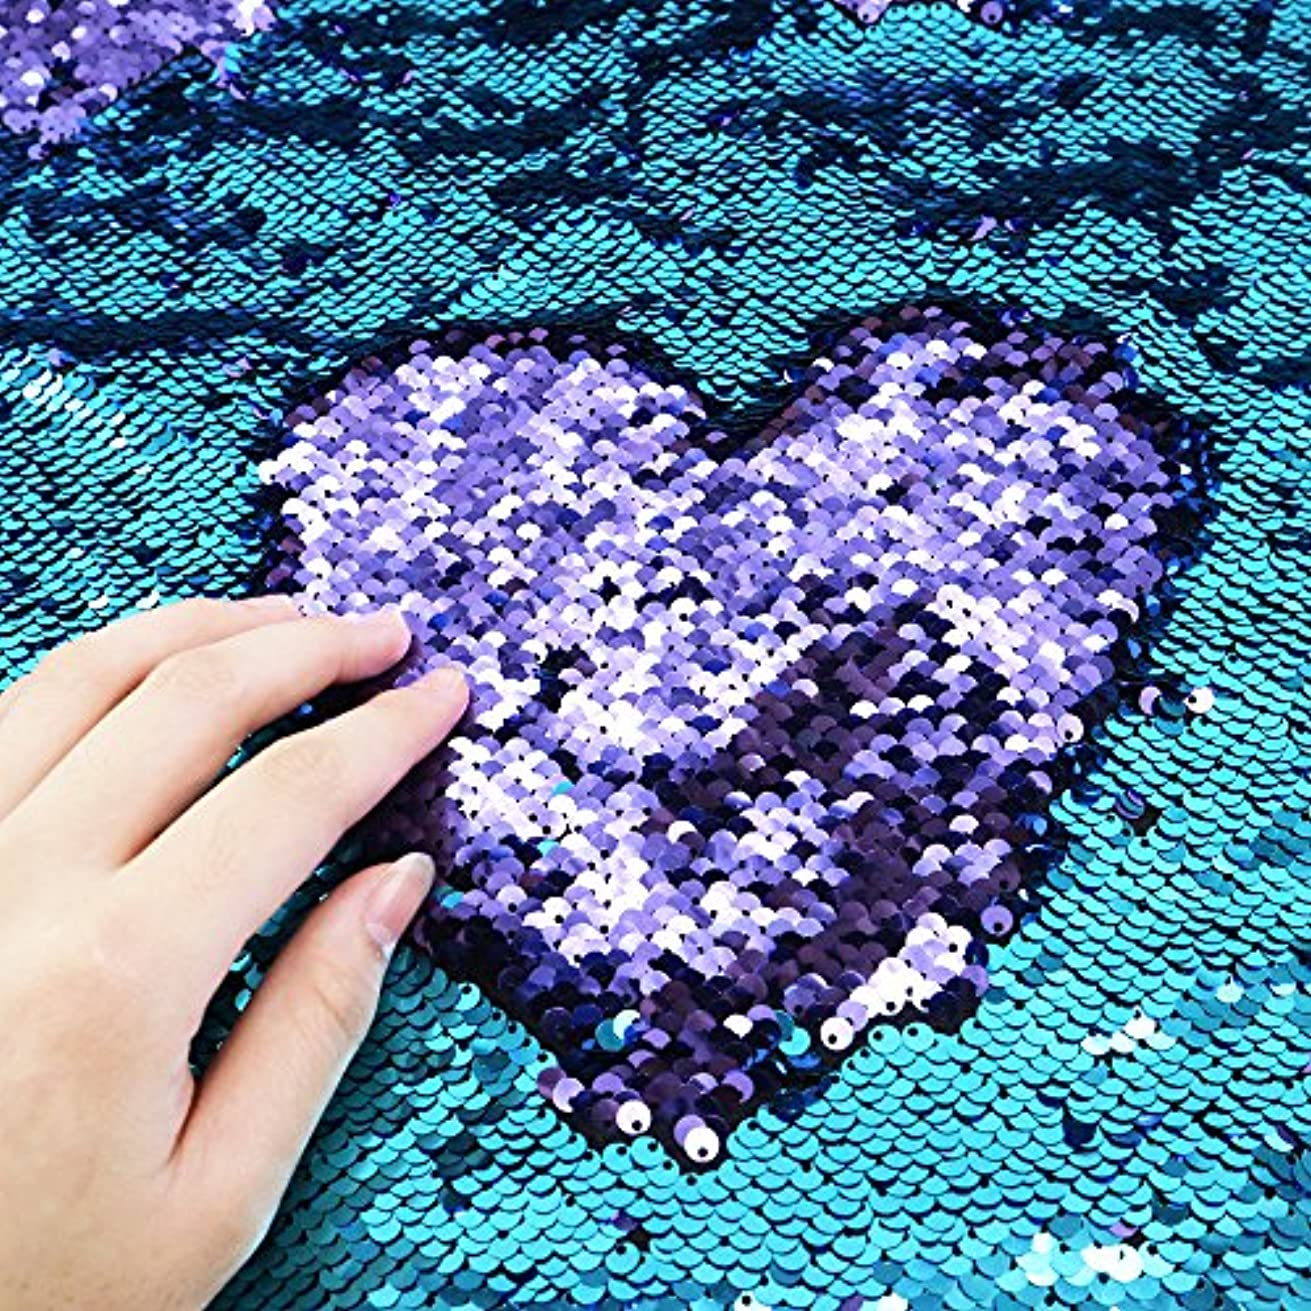 Sequins Sewing Fabric Mermaid Flip Up Sequin Reversible Sparkly Fabric 1 Yard (36'' x 47'') for Dress Clothing Making Home Decor (Blue & Light Purple)